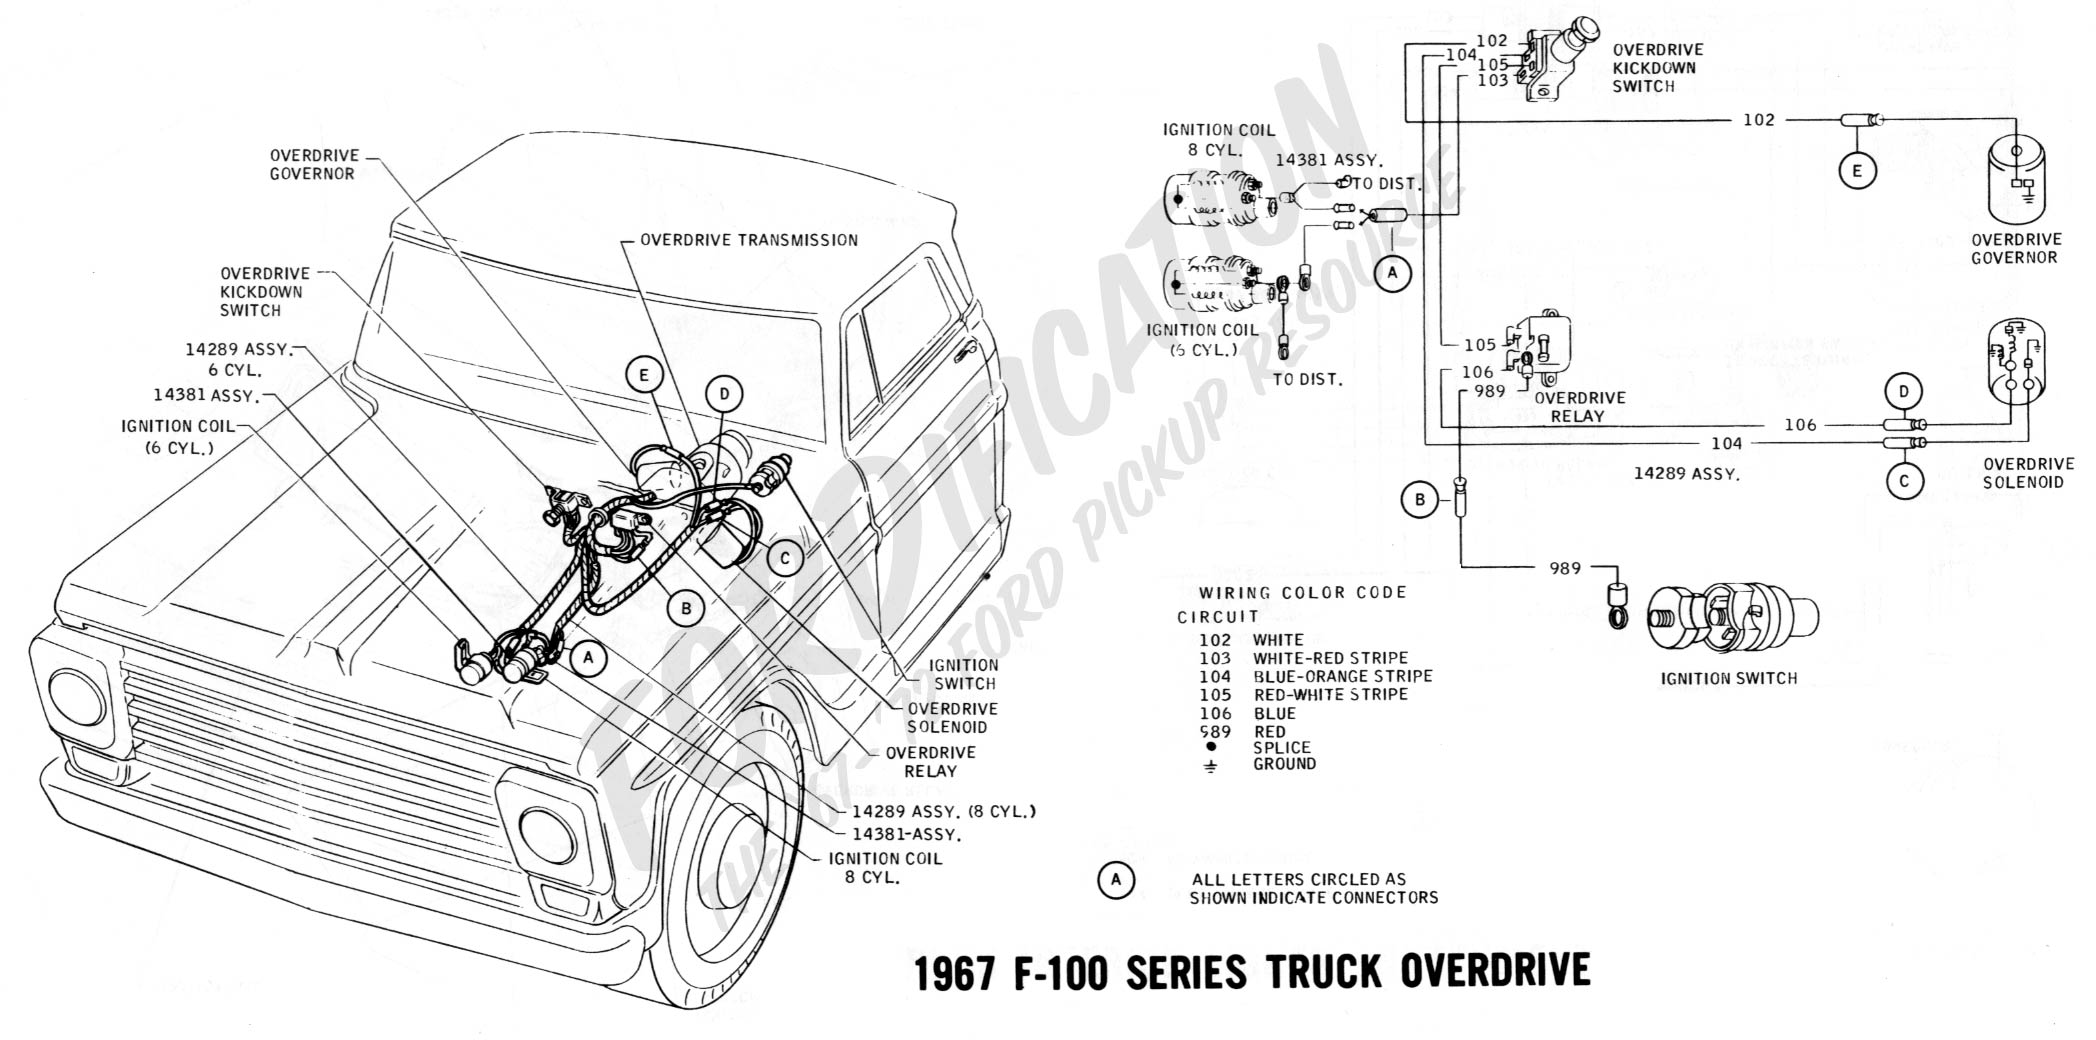 wiring 1967overdrive2 ford truck technical drawings and schematics section h wiring  at eliteediting.co